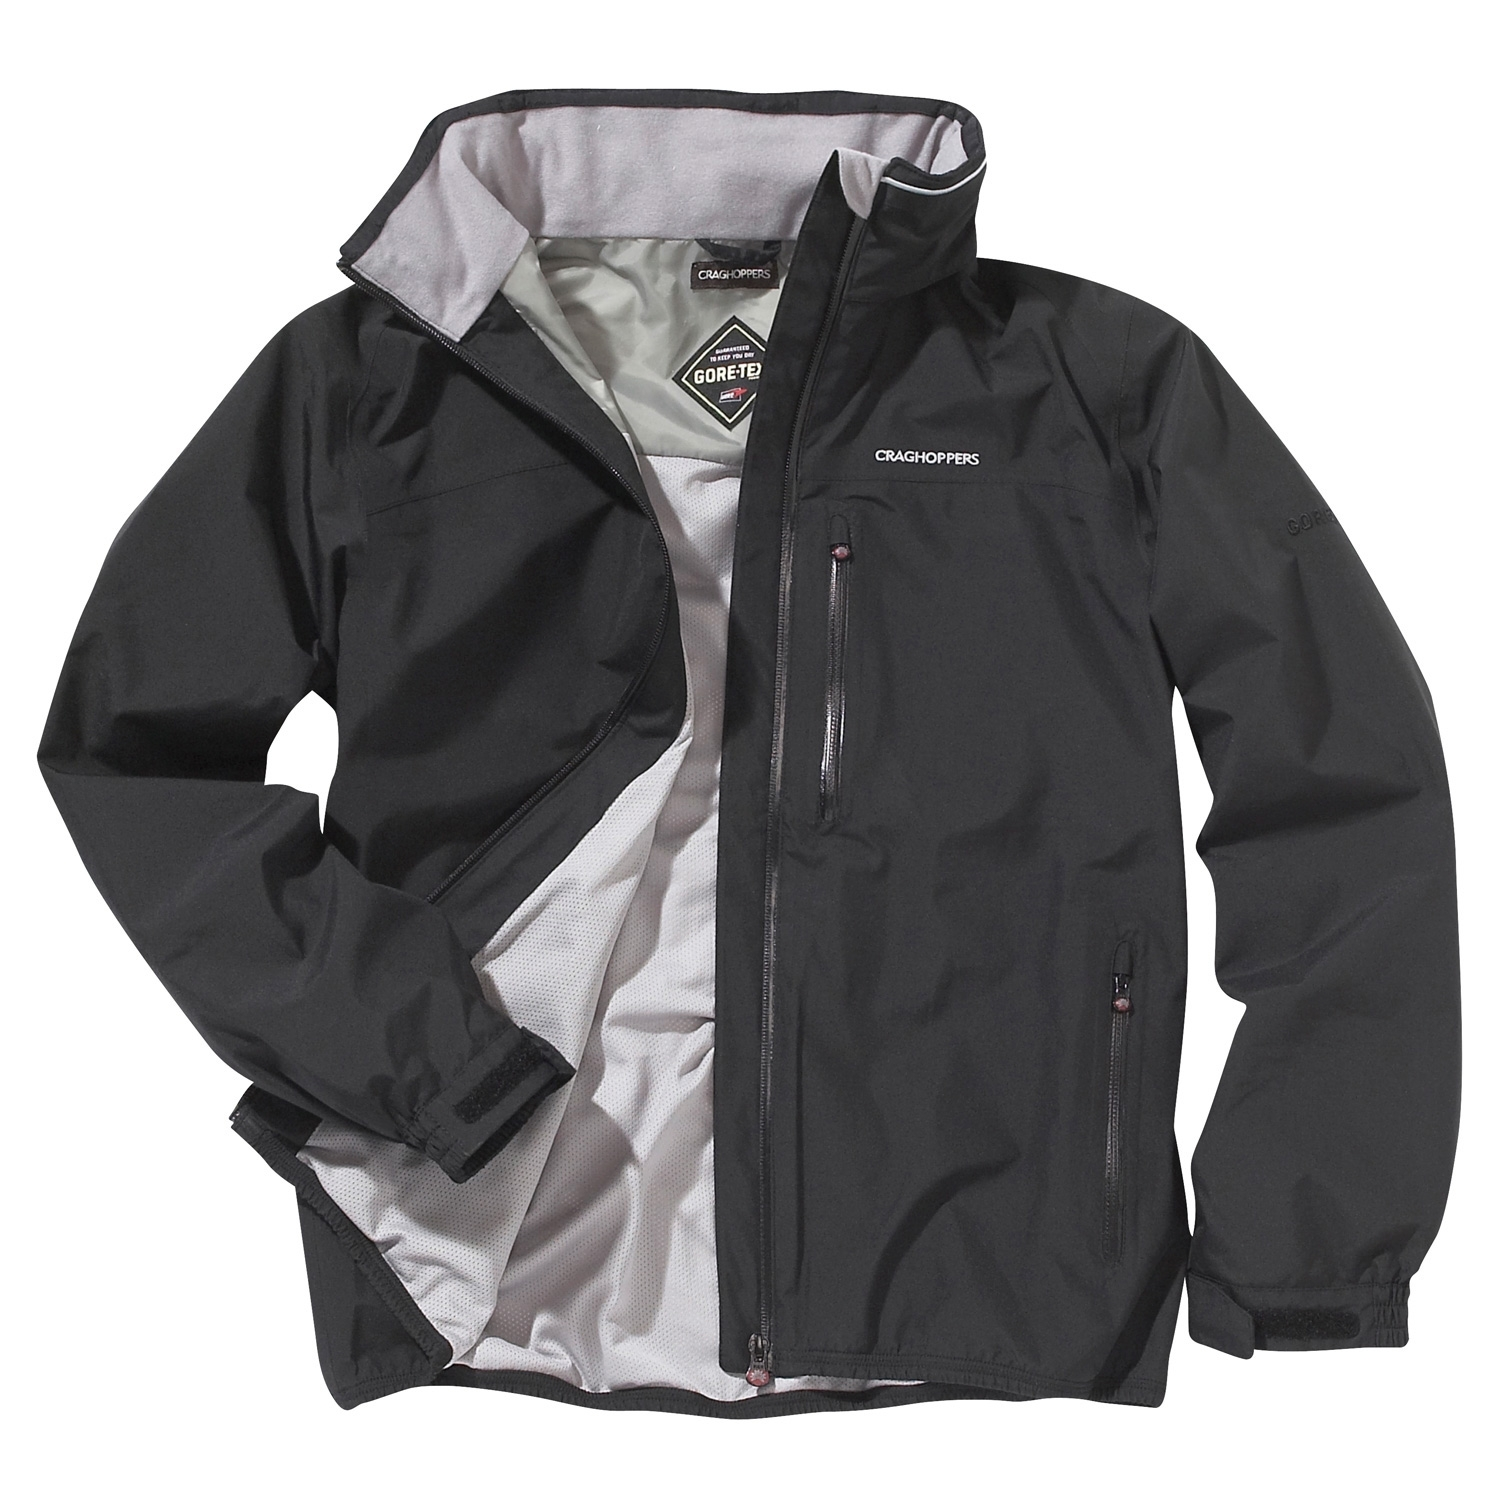 Craghoppers Madigan 3 in 1 Womens Jacket - e-outdoor